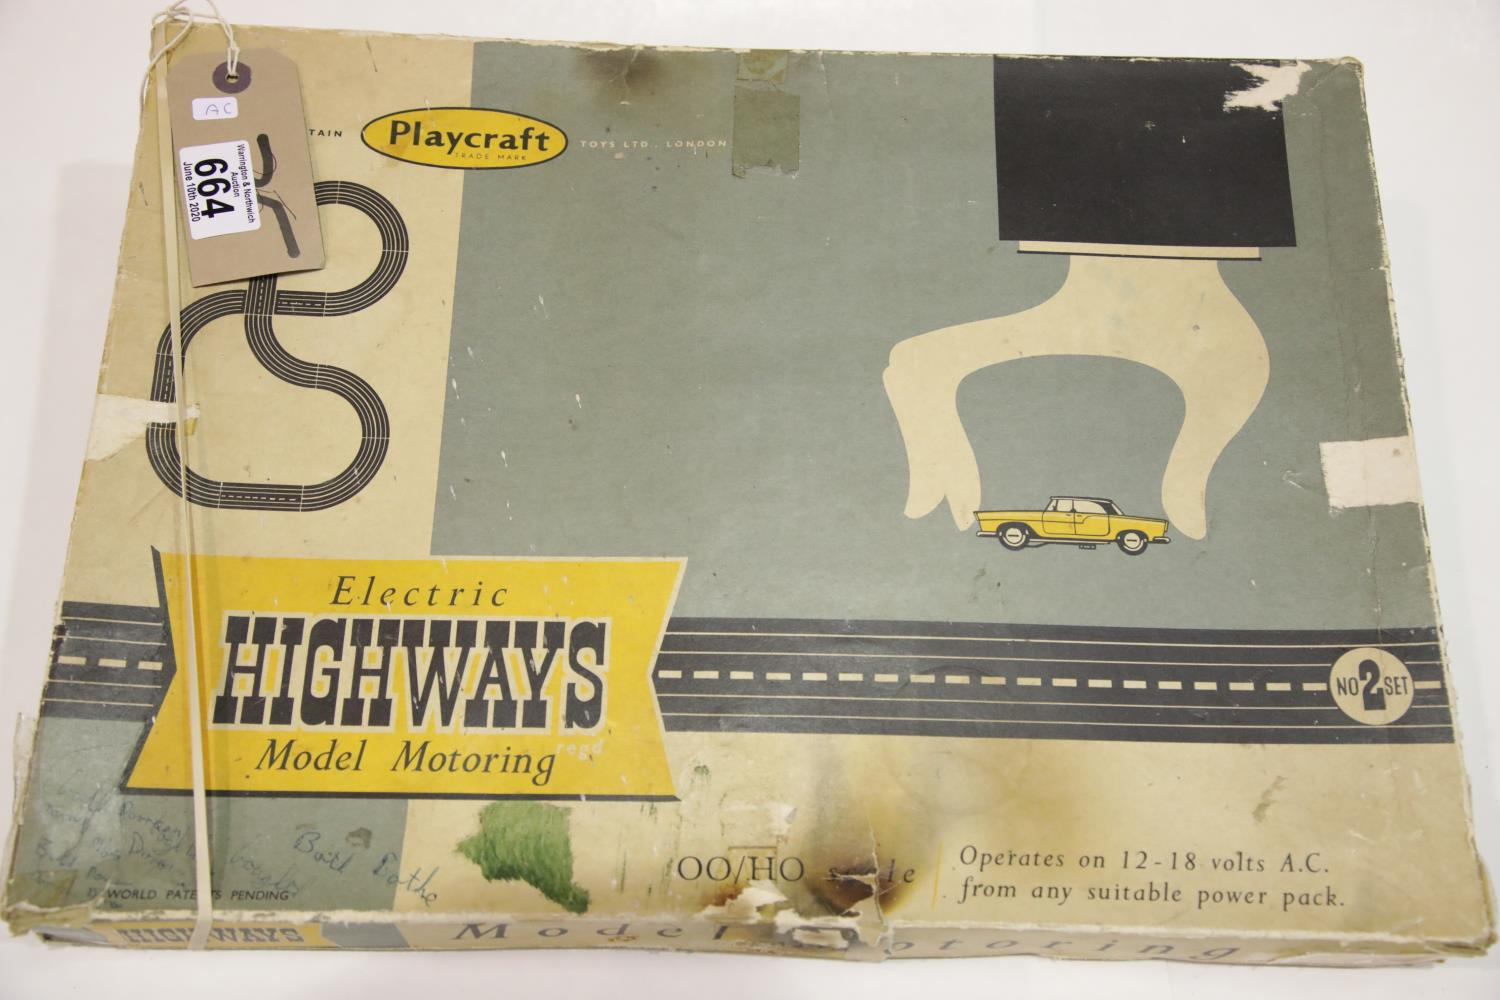 Lot 664 - Playcraft Electric Highways model slot car set with cars, track, controllers, instructions etc P&P